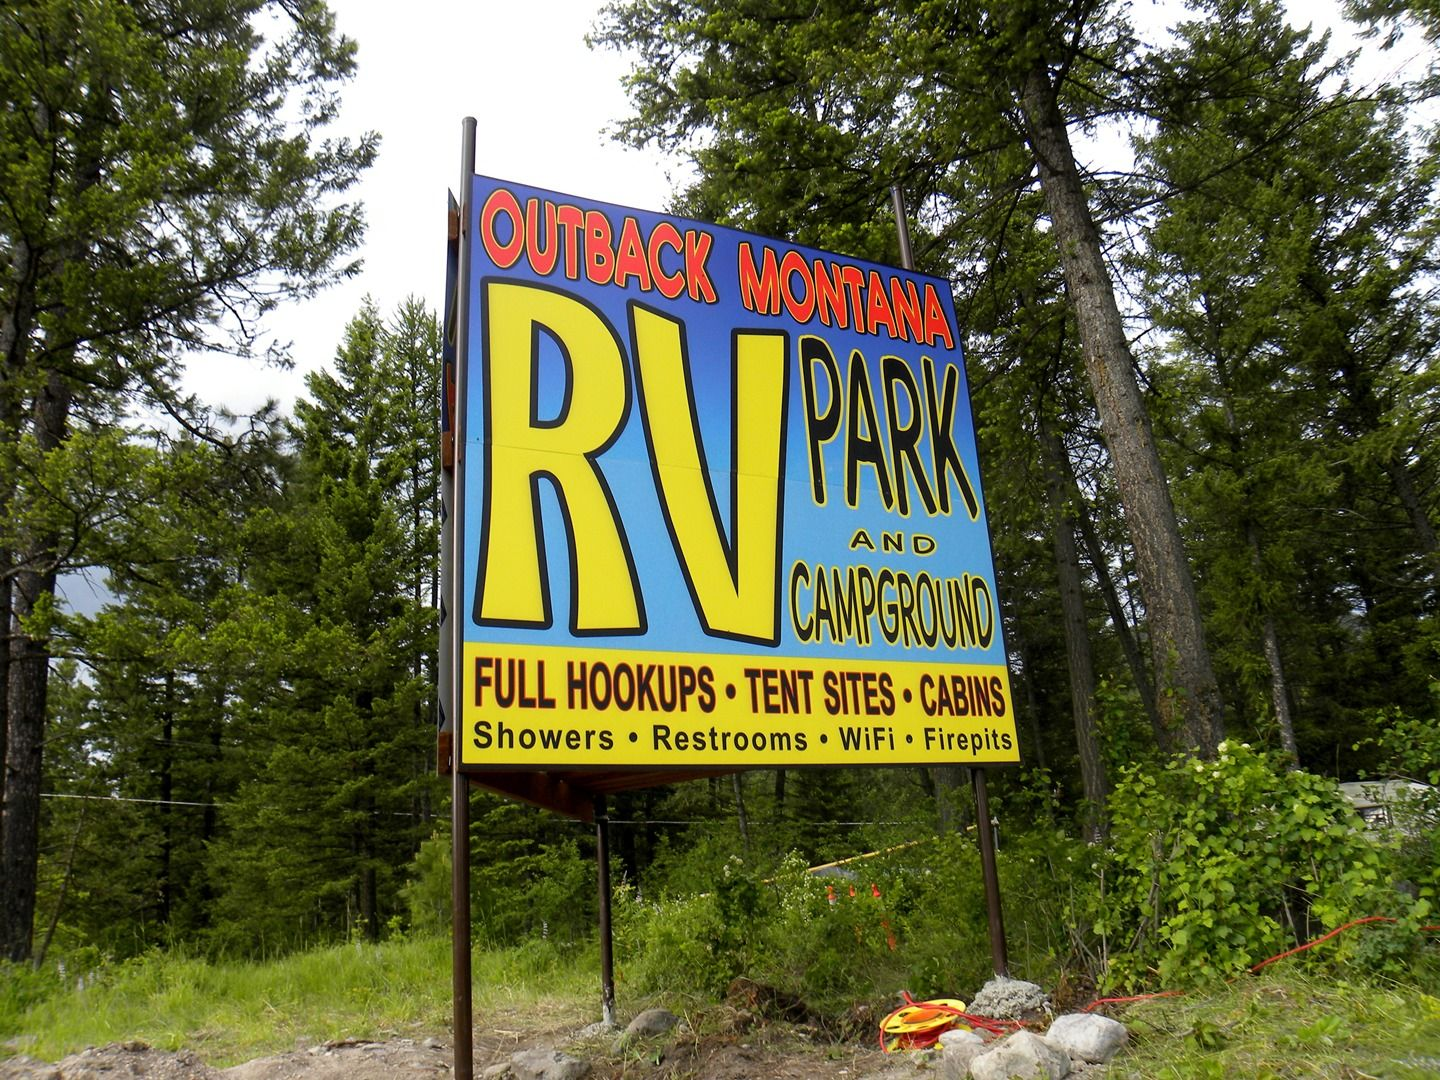 Montana campgrounds with hookups